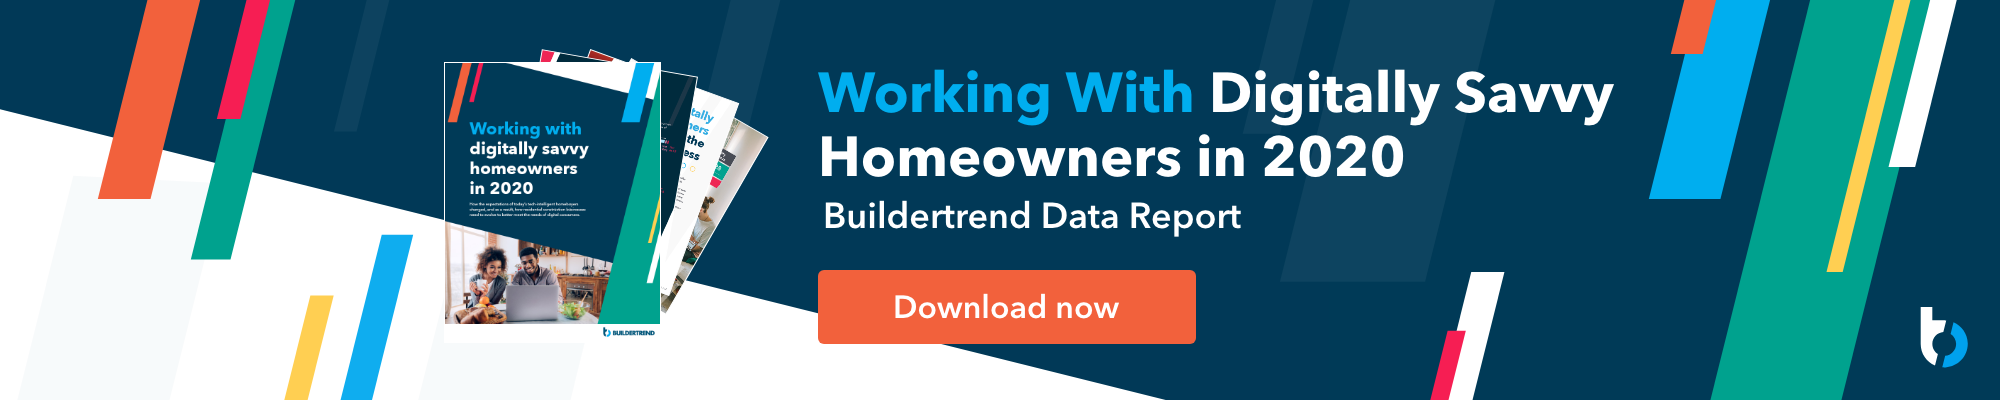 Buildertrend Data Report